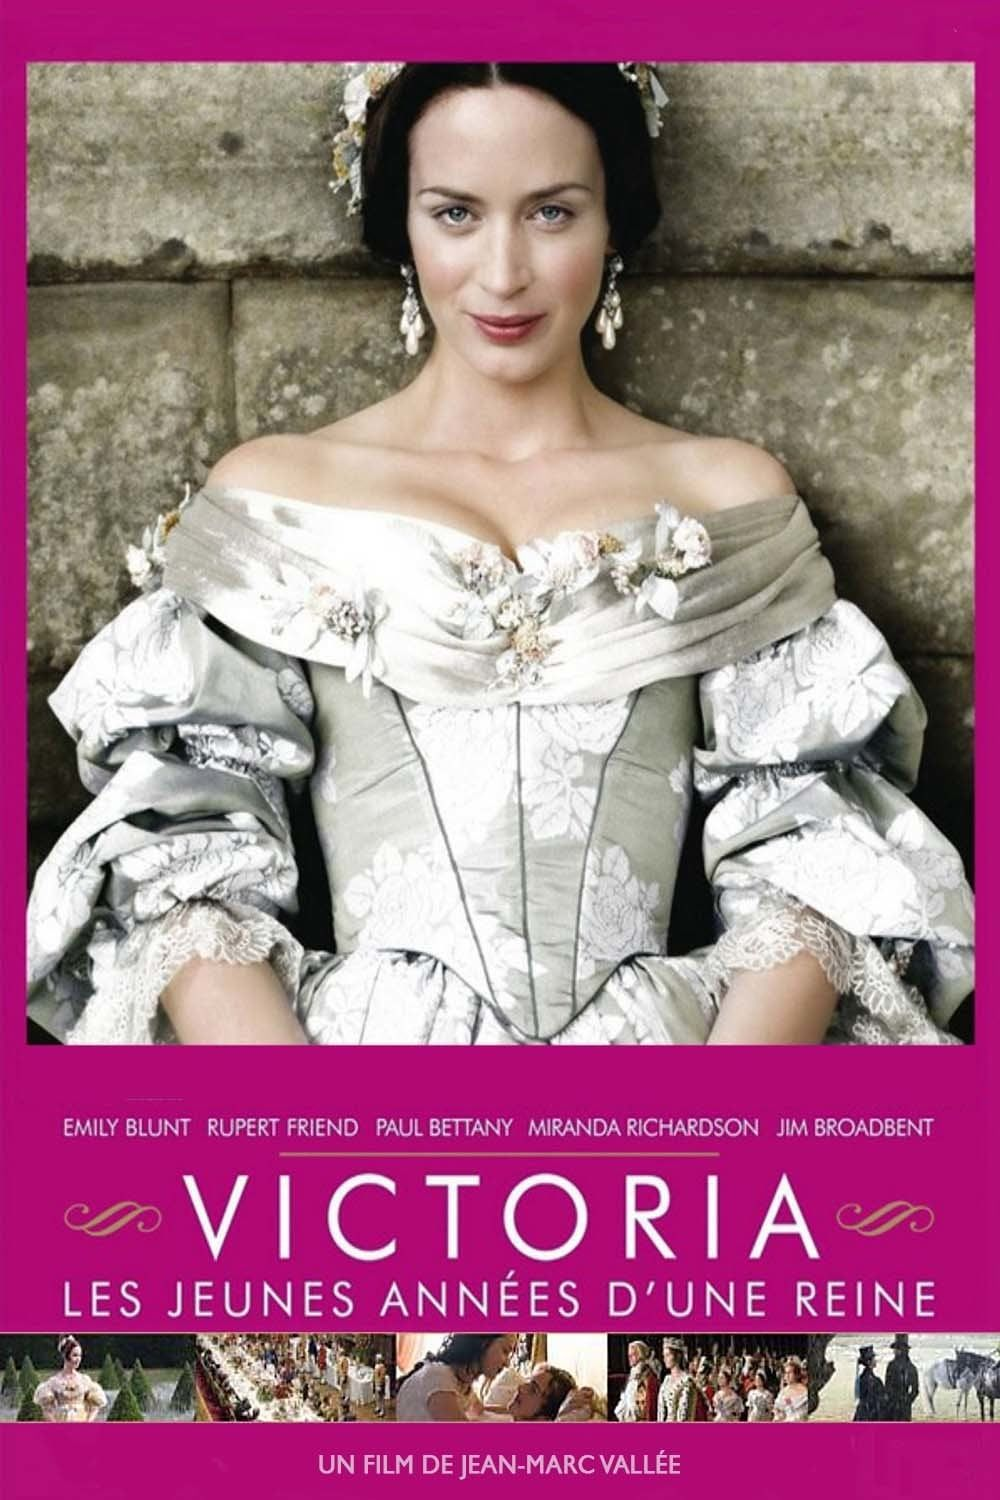 The Young Victoria FULL MOVIE HD1080p Sub English Play For